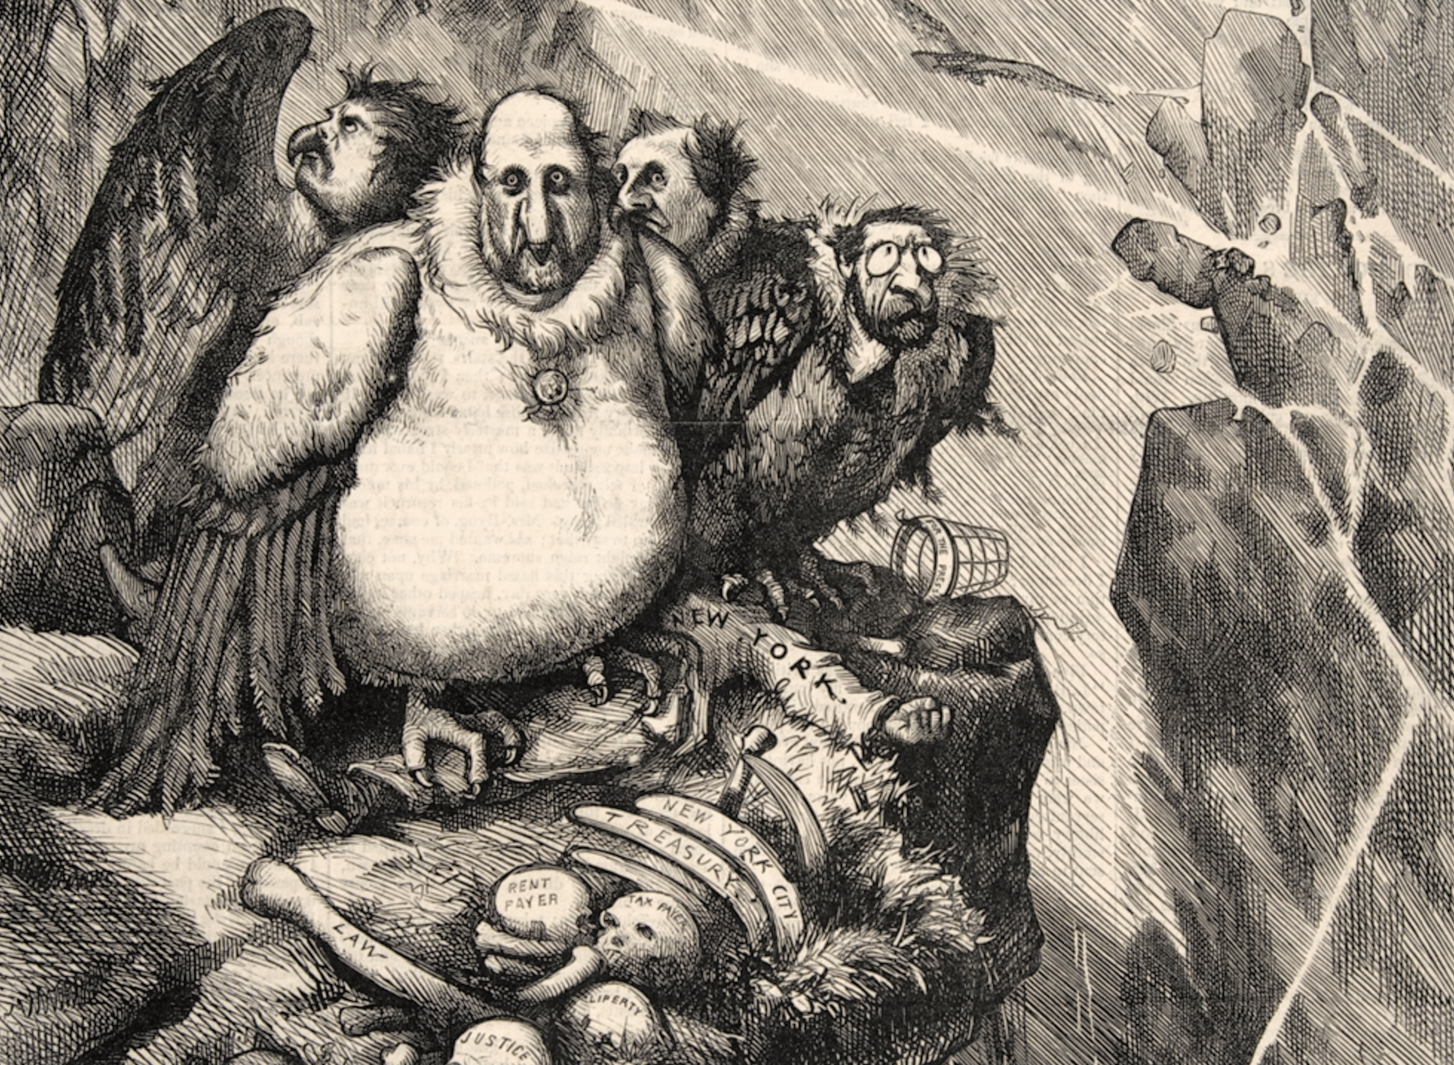 """A Group of Vultures Waiting for the Storm to """"Blow Over""""--""""Let Us Prey""""by Thomas Nast,Wood engraving published in Harper's Weekly newspaper, September 23, 1871"""